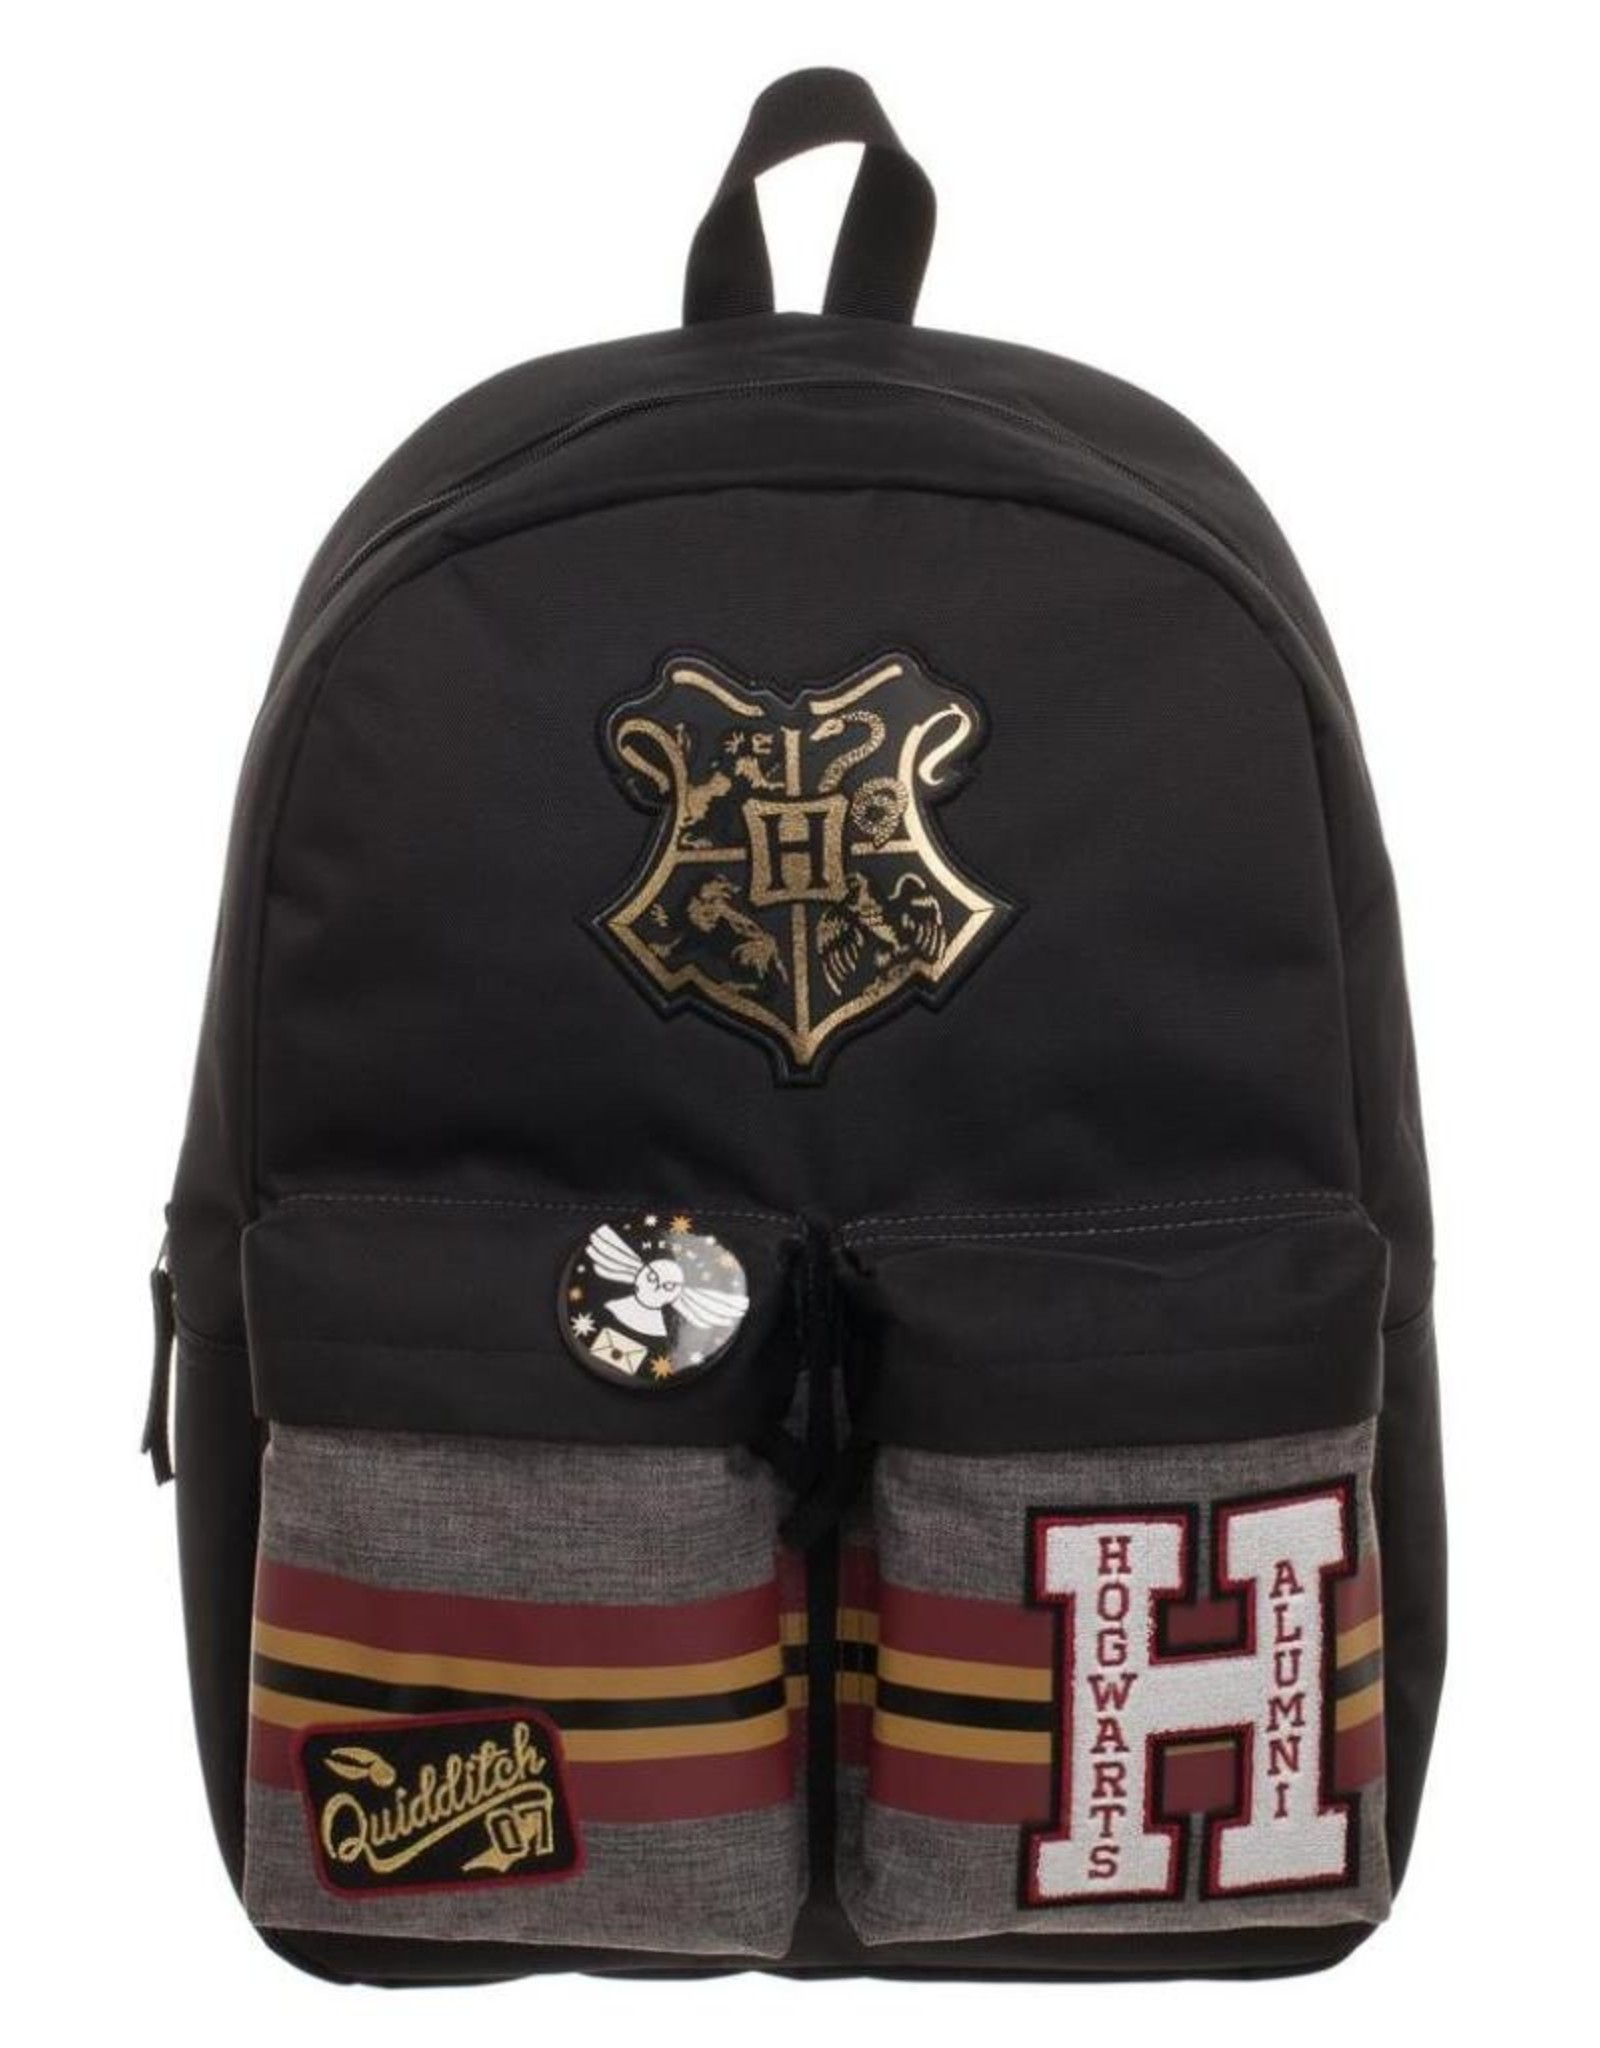 Bioworld Fantasy bags and wallets - Harry Potter Patches Backpack with Pin Badge Hogwarts